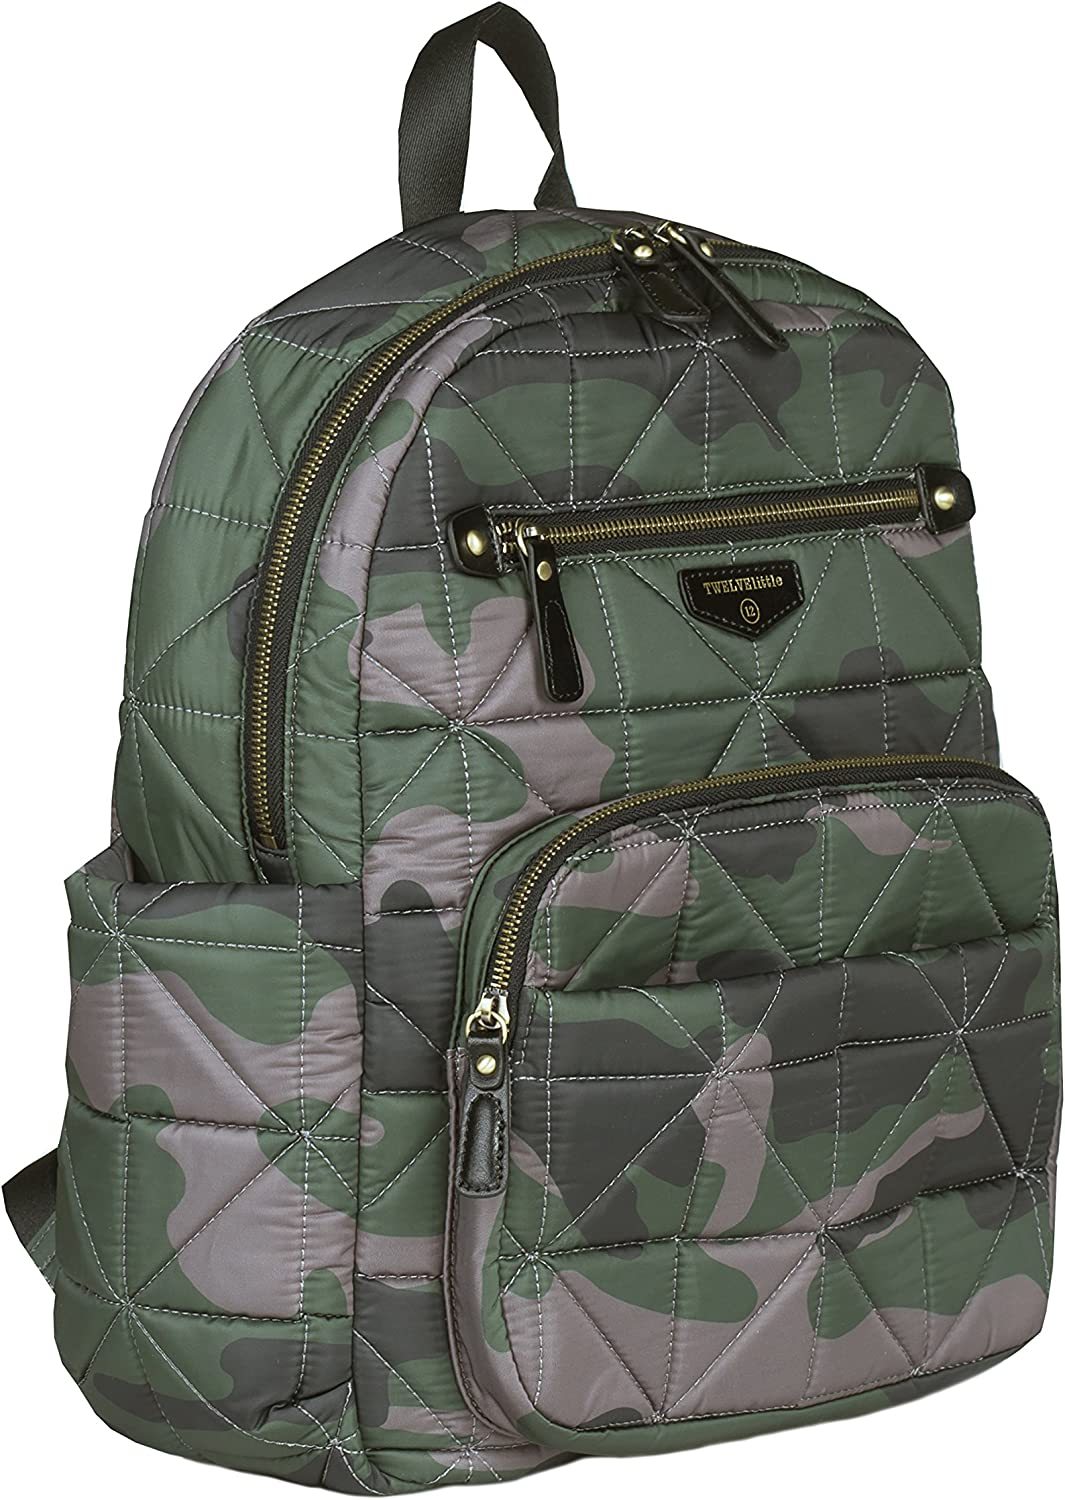 TWELVElittle Companion Diaper Bag Backpack Platinum 1.0 Includes changing pads and insulated pockets